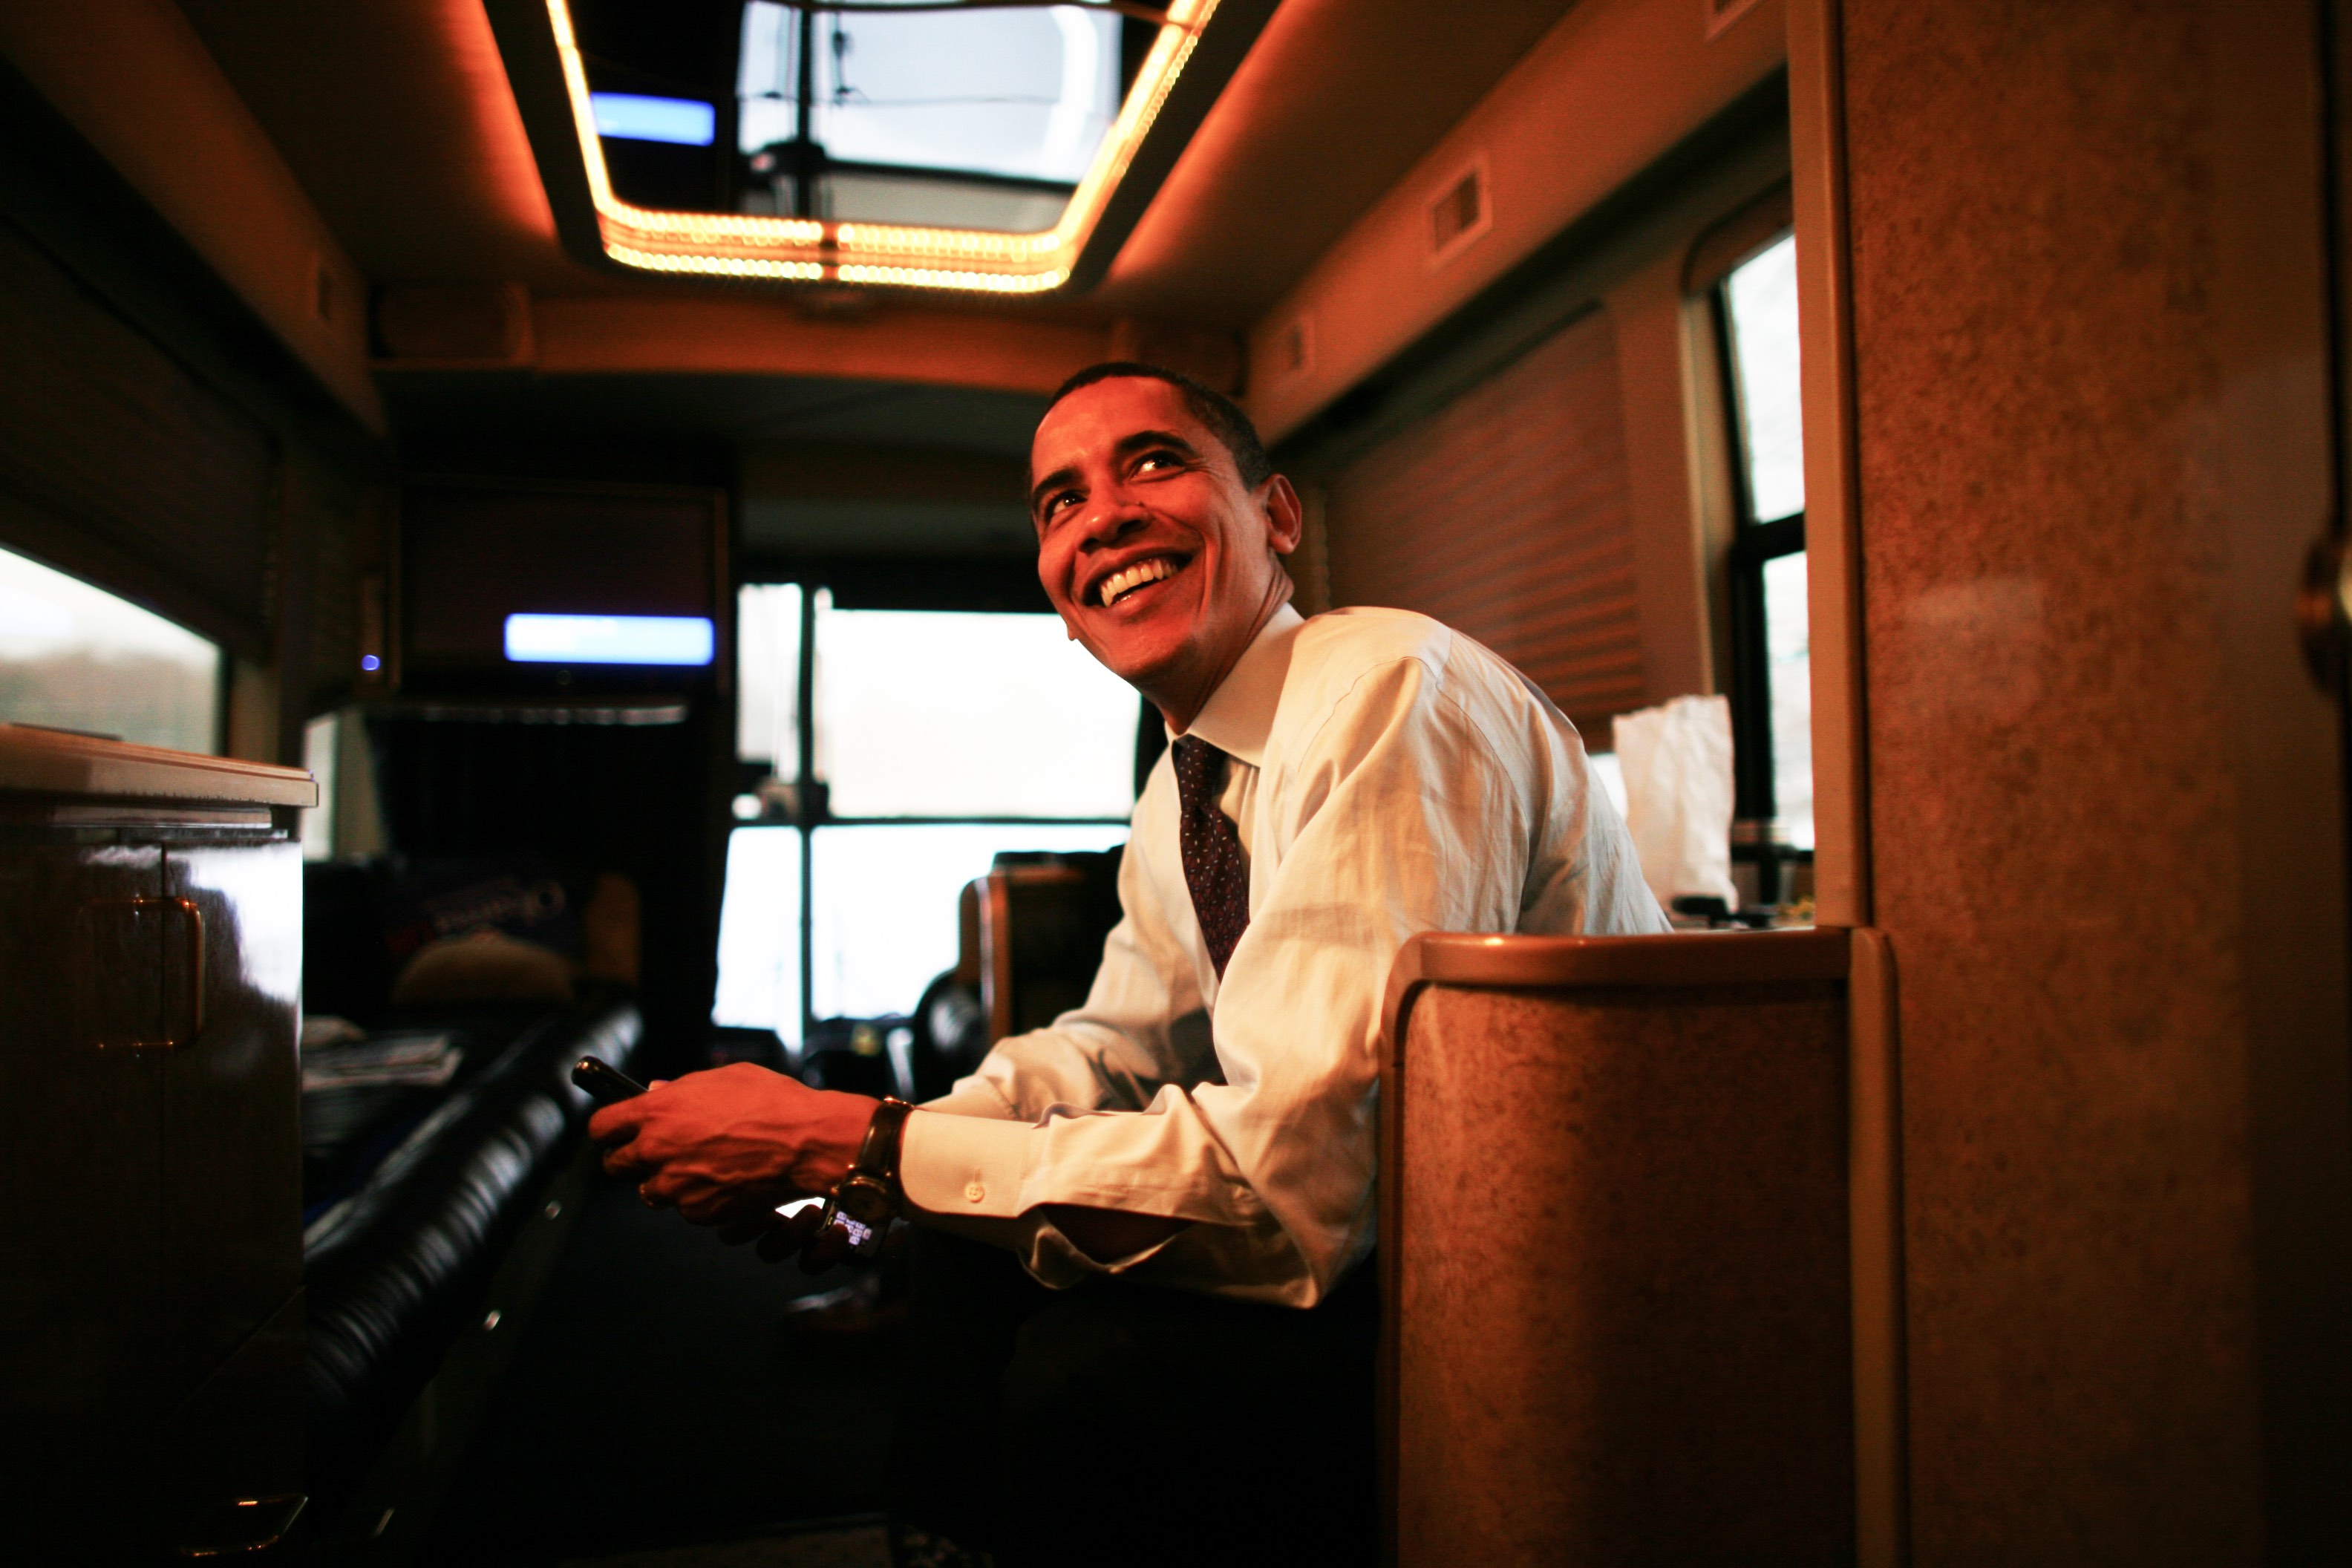 01-07-08 - Rochester, NH-  Senator Barack Obama on his way to a rally in Rochestor. Photo by Ozier Muhammad/The New York Times